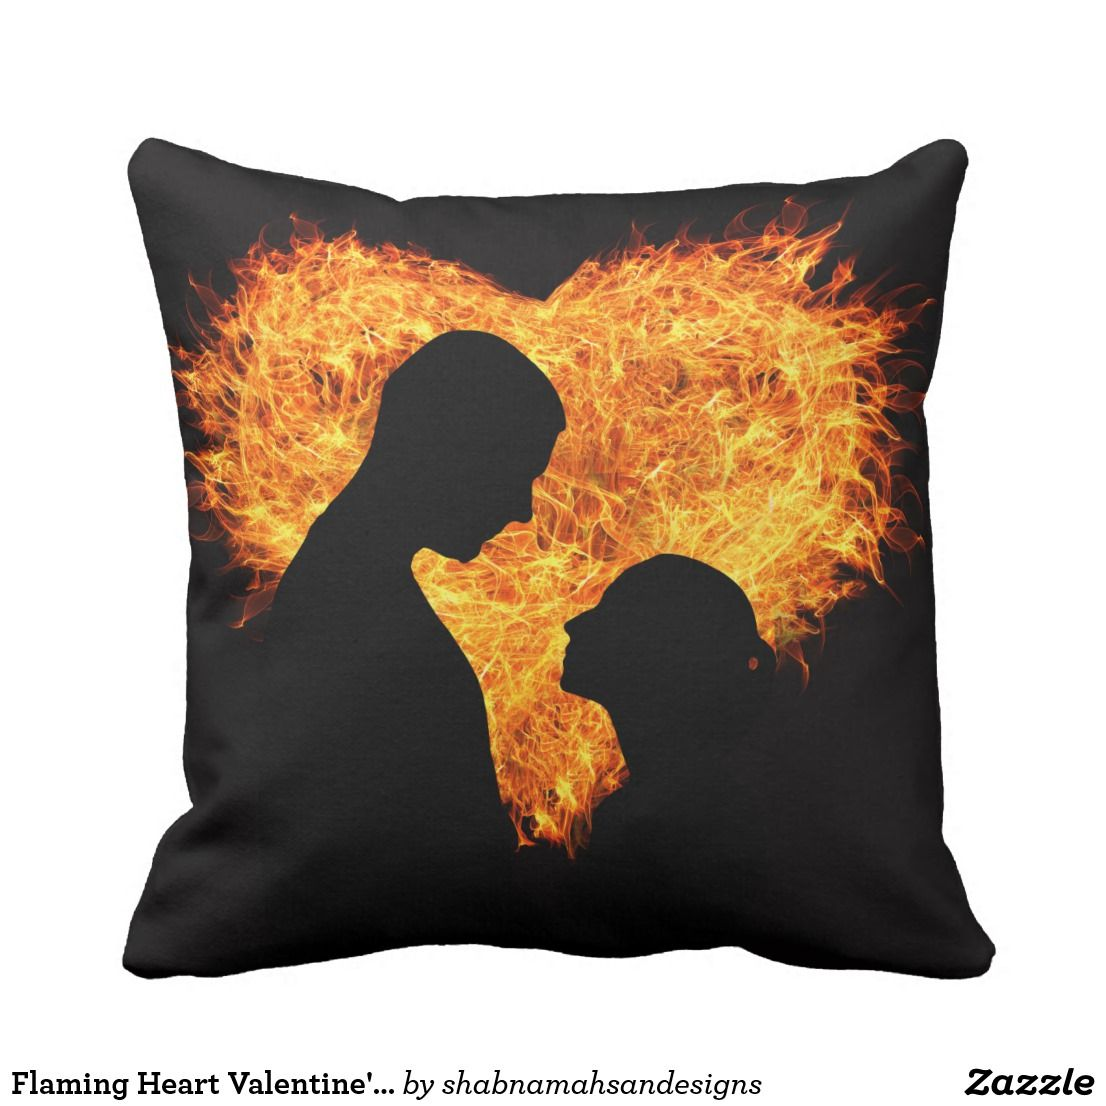 Flaming Heart Valentine's Day Square Throw Pillow